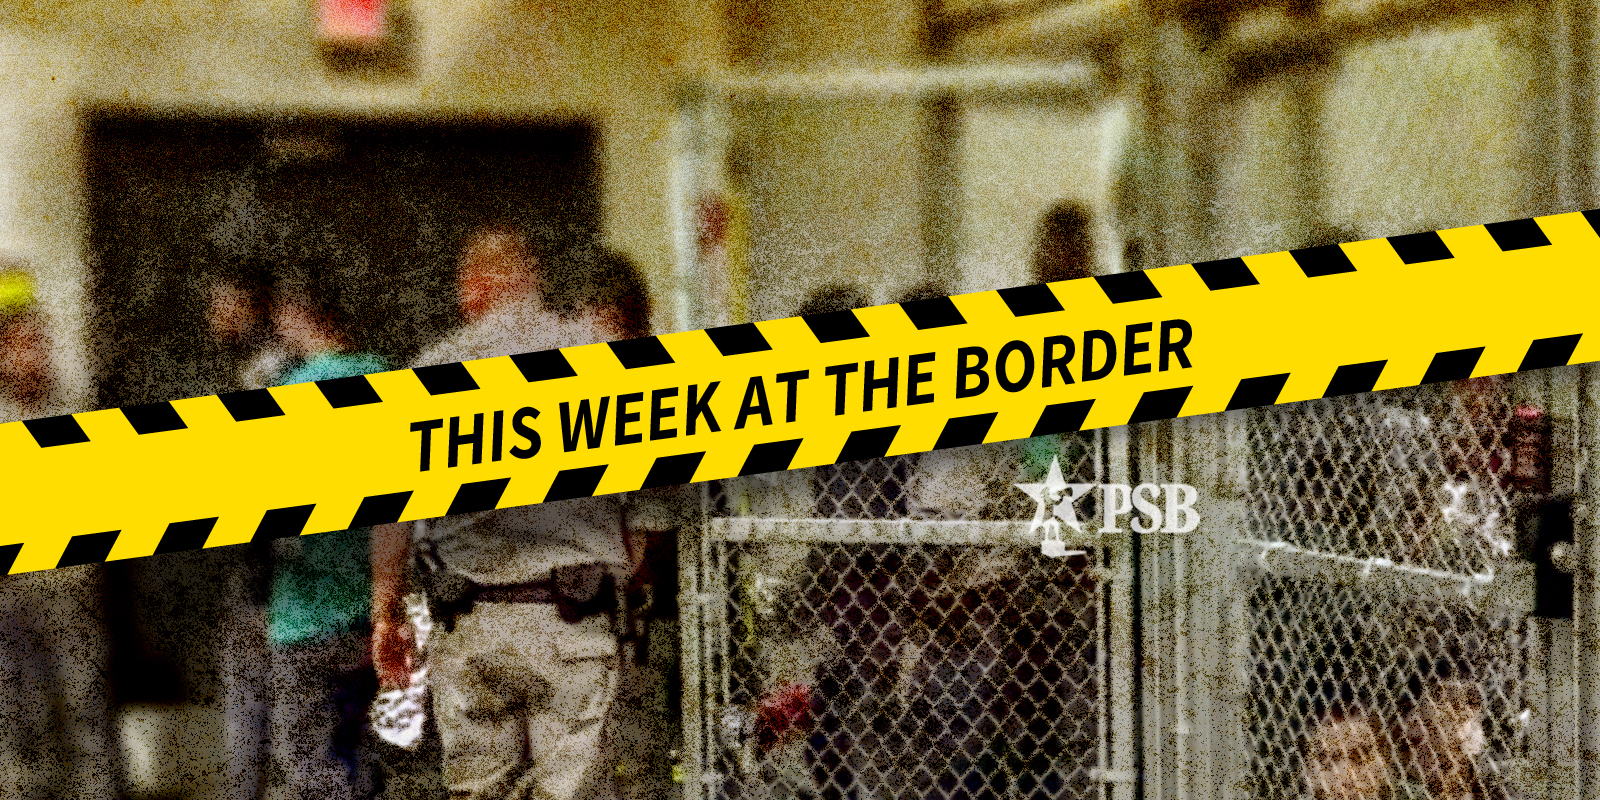 This Week Along the Border...